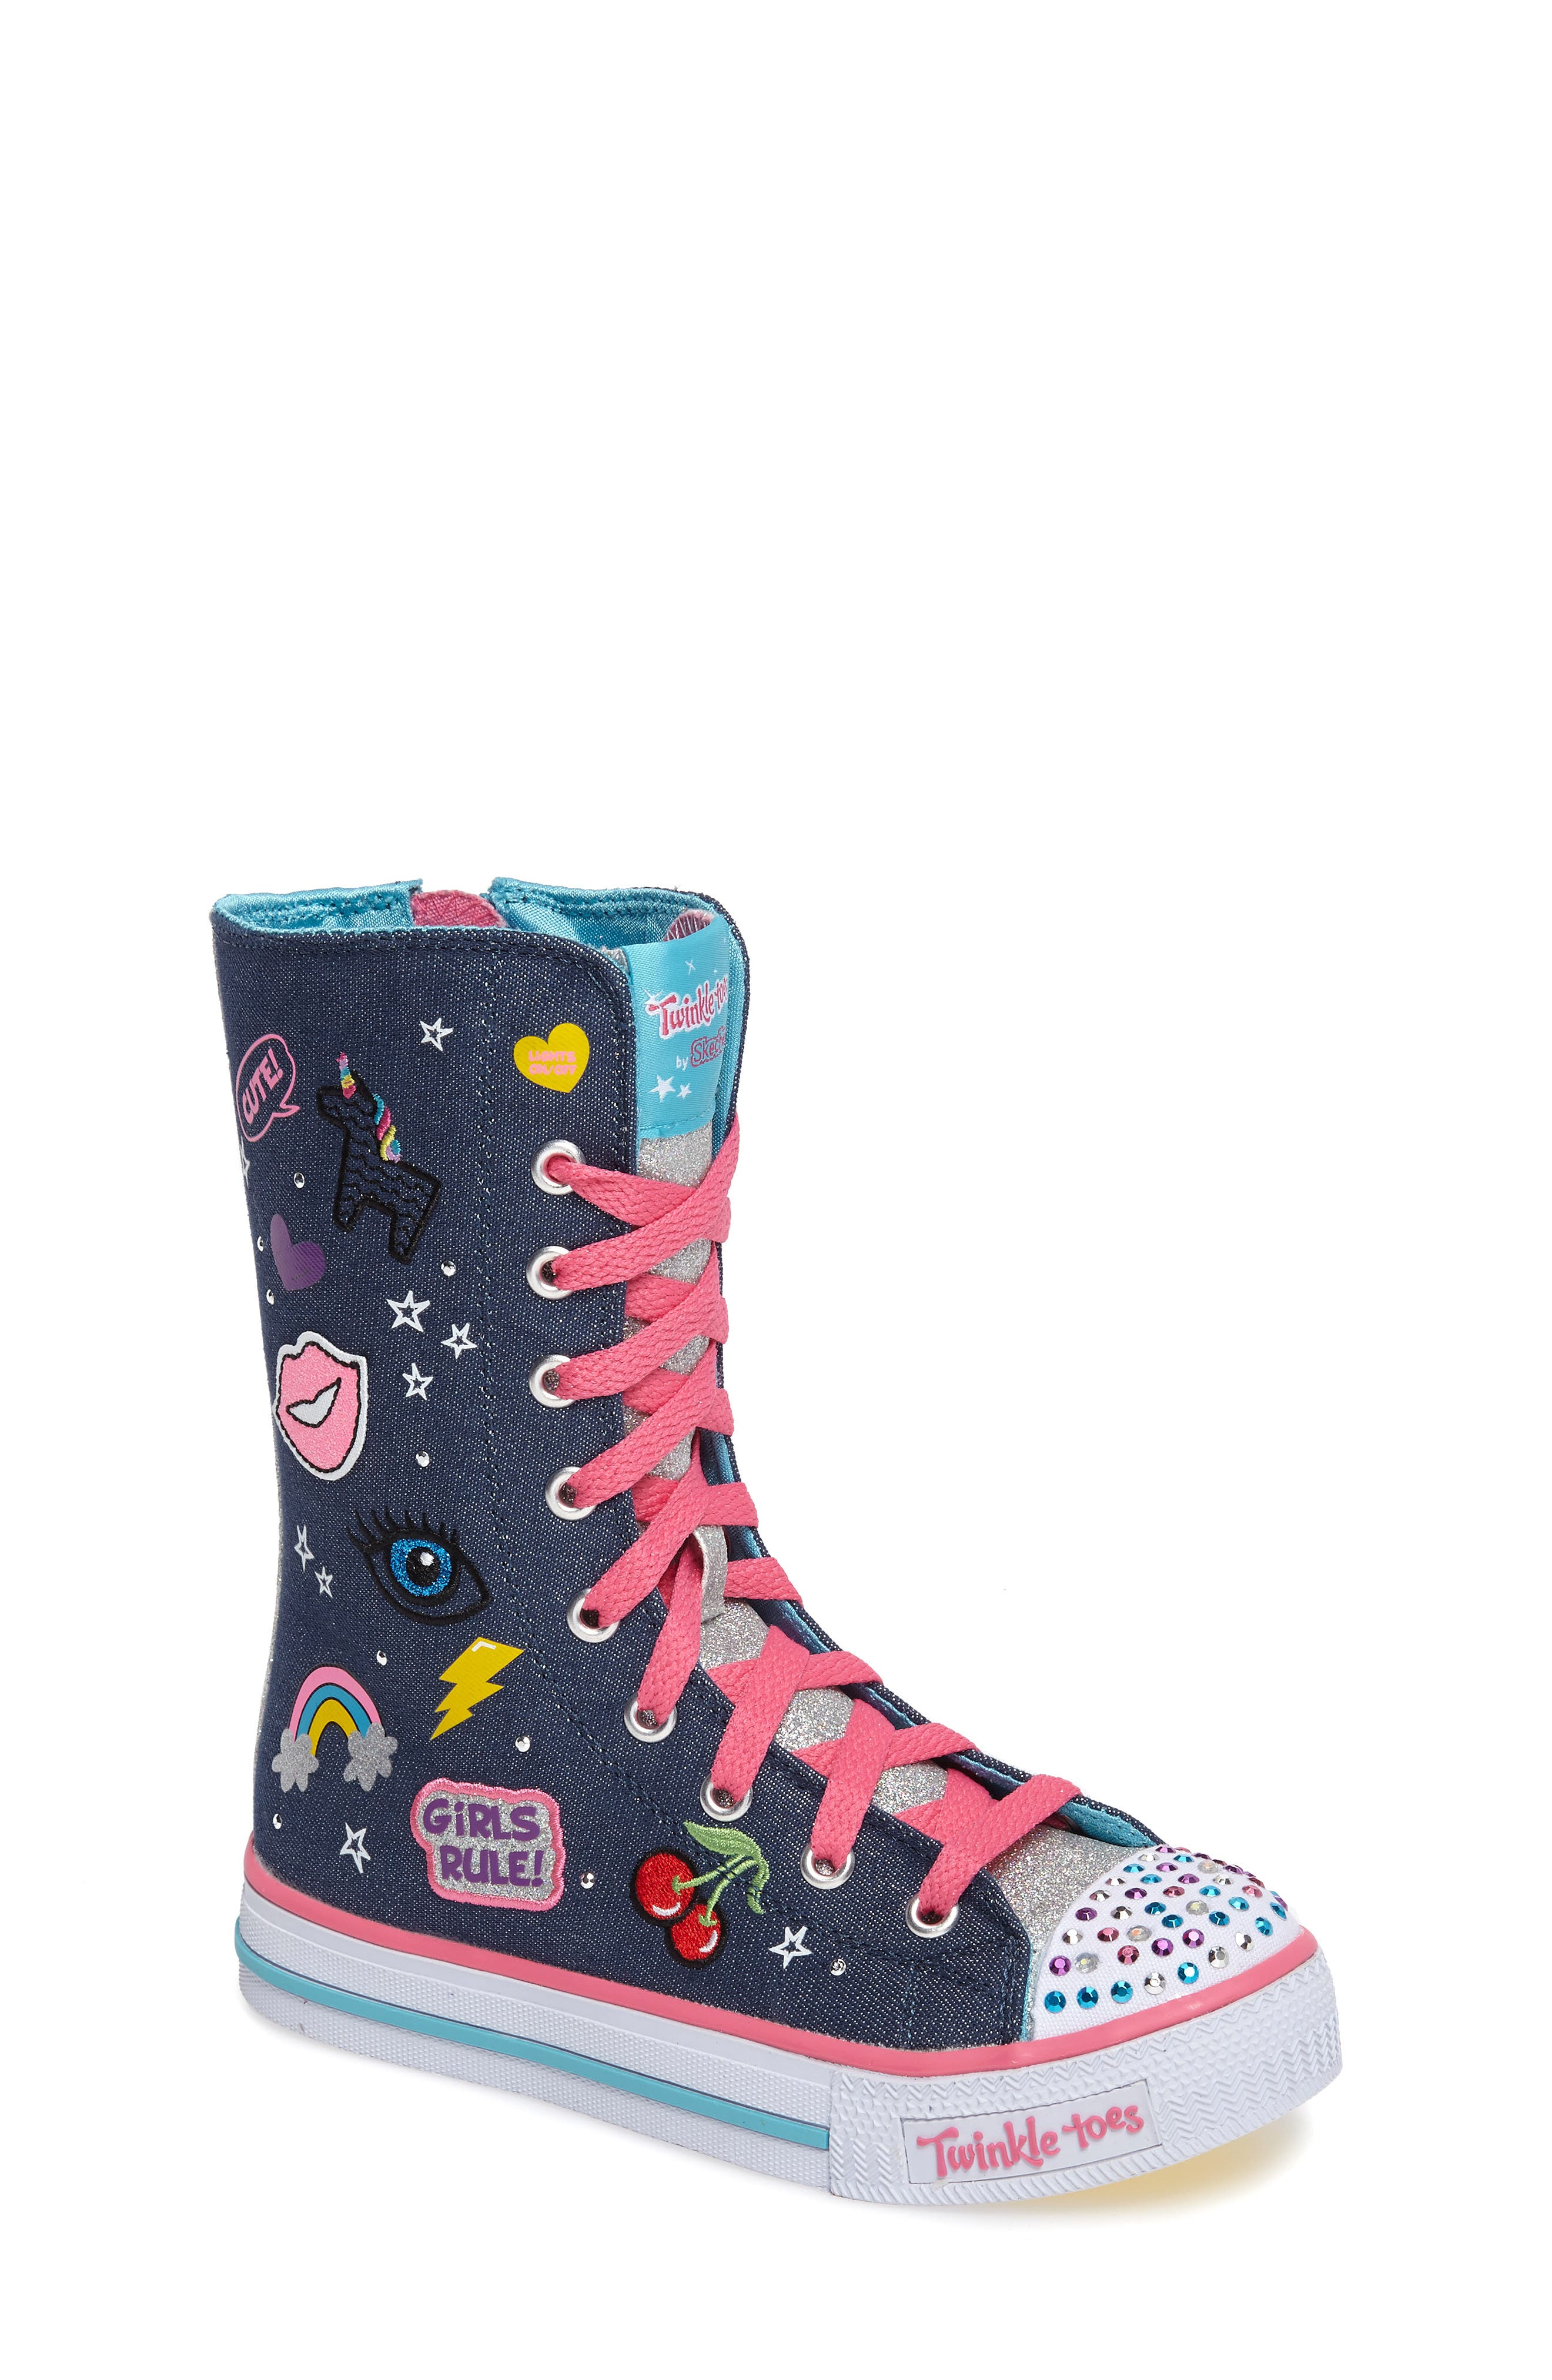 Twinkle Toes Shuffles Ultra High Top Sneaker,                             Main thumbnail 1, color,                             468